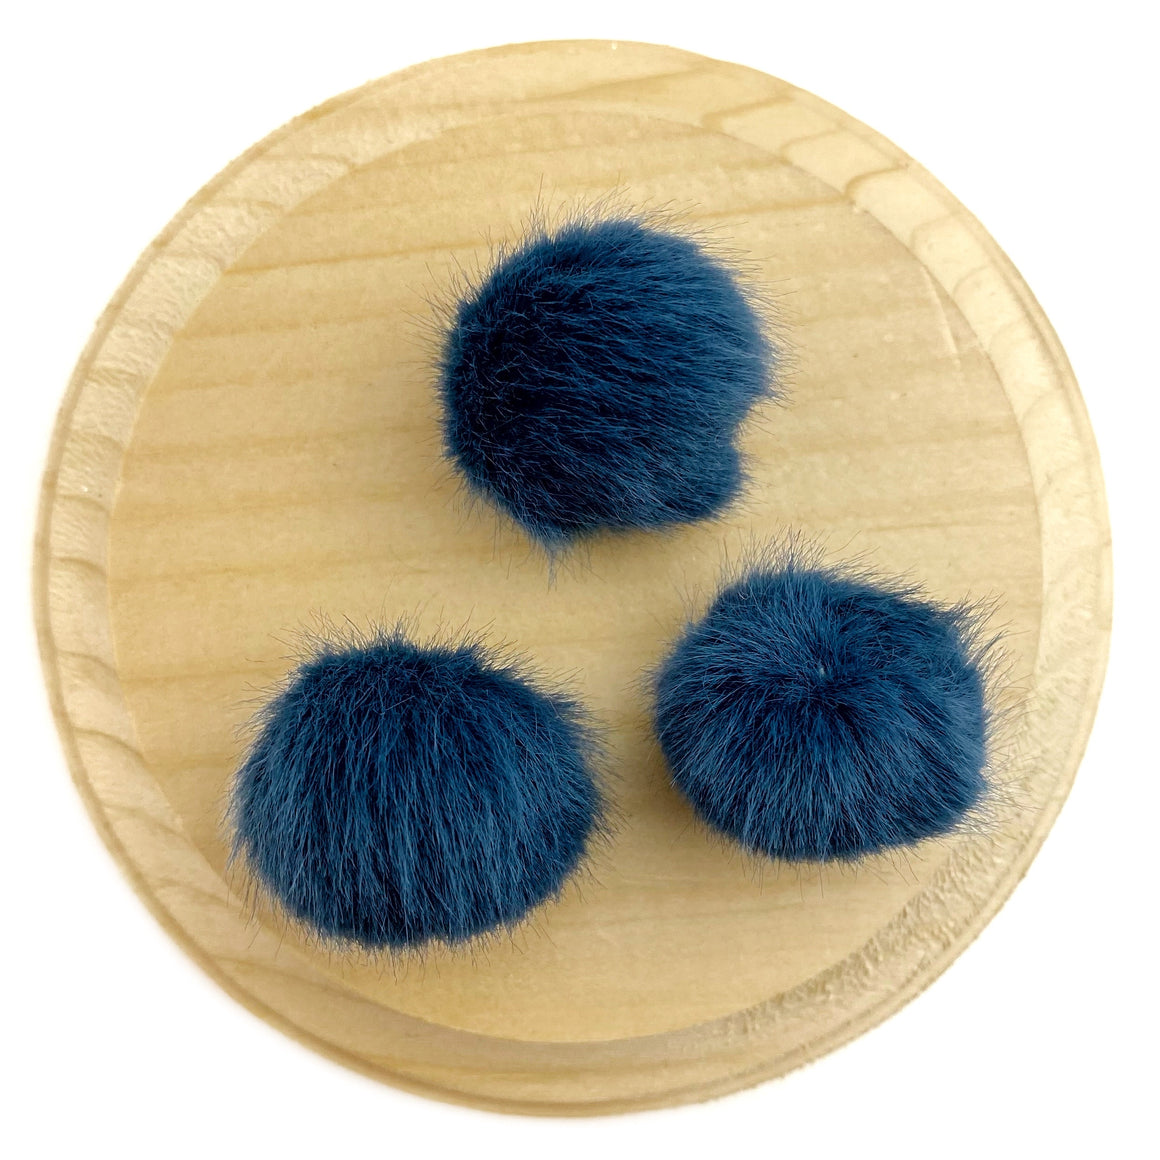 Set of 3 Navy Faux Fur Pom Poms